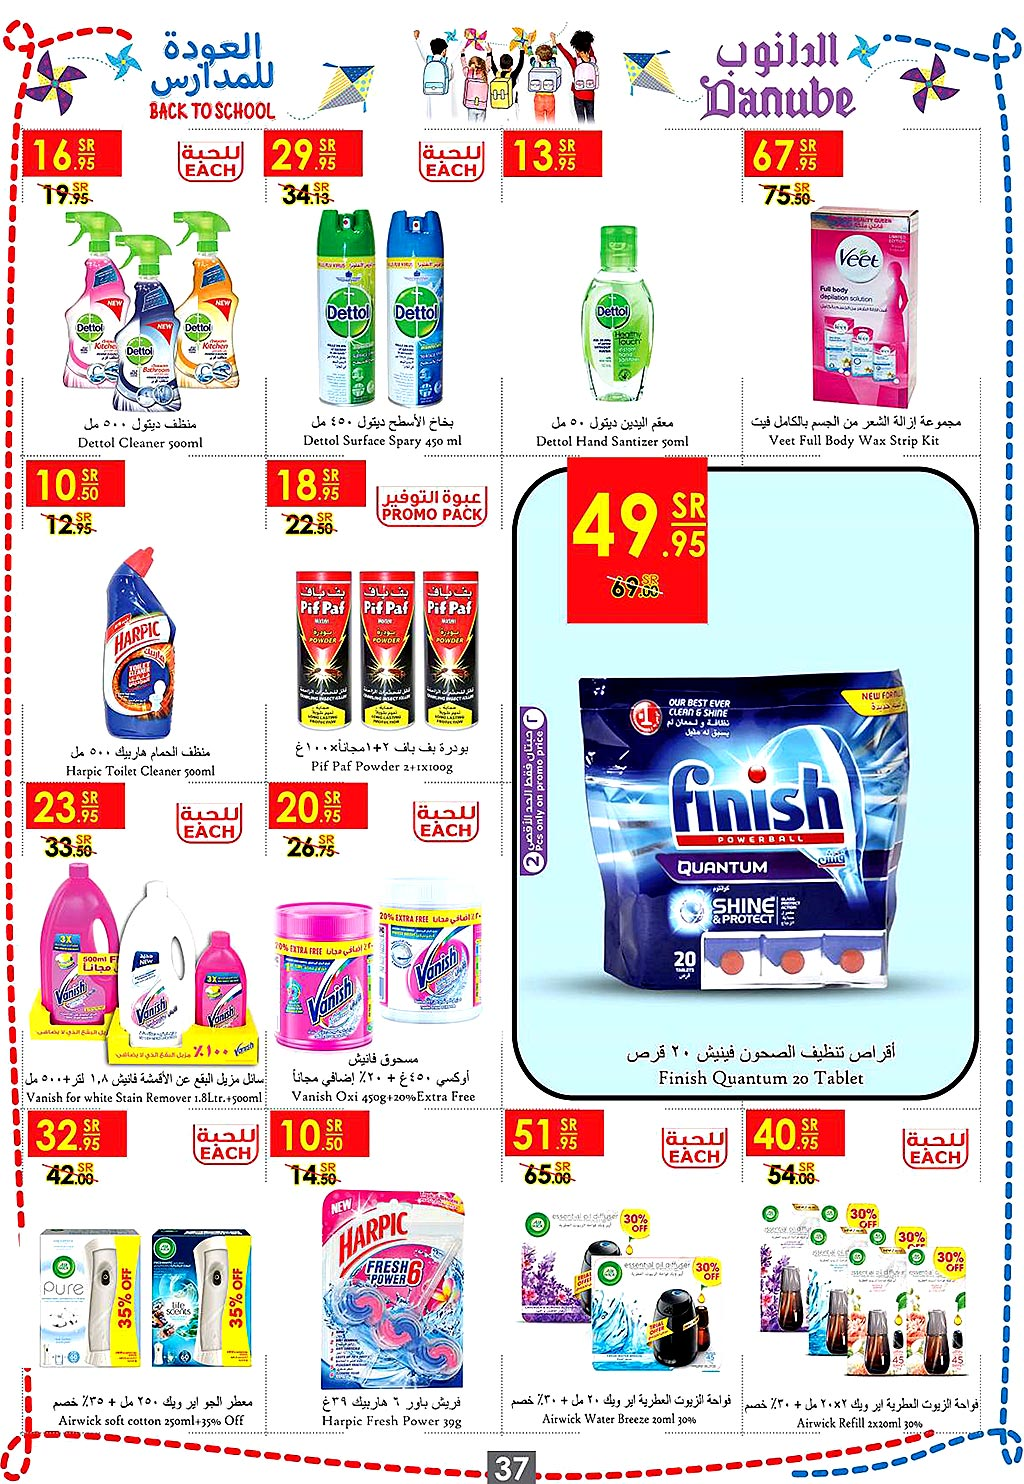 danube offers from 7aug to 21aug 2019 page number 36 عروض الدانوب من 7 أغسطس حتى 21 أغسطس 2019 صفحة رقم 36